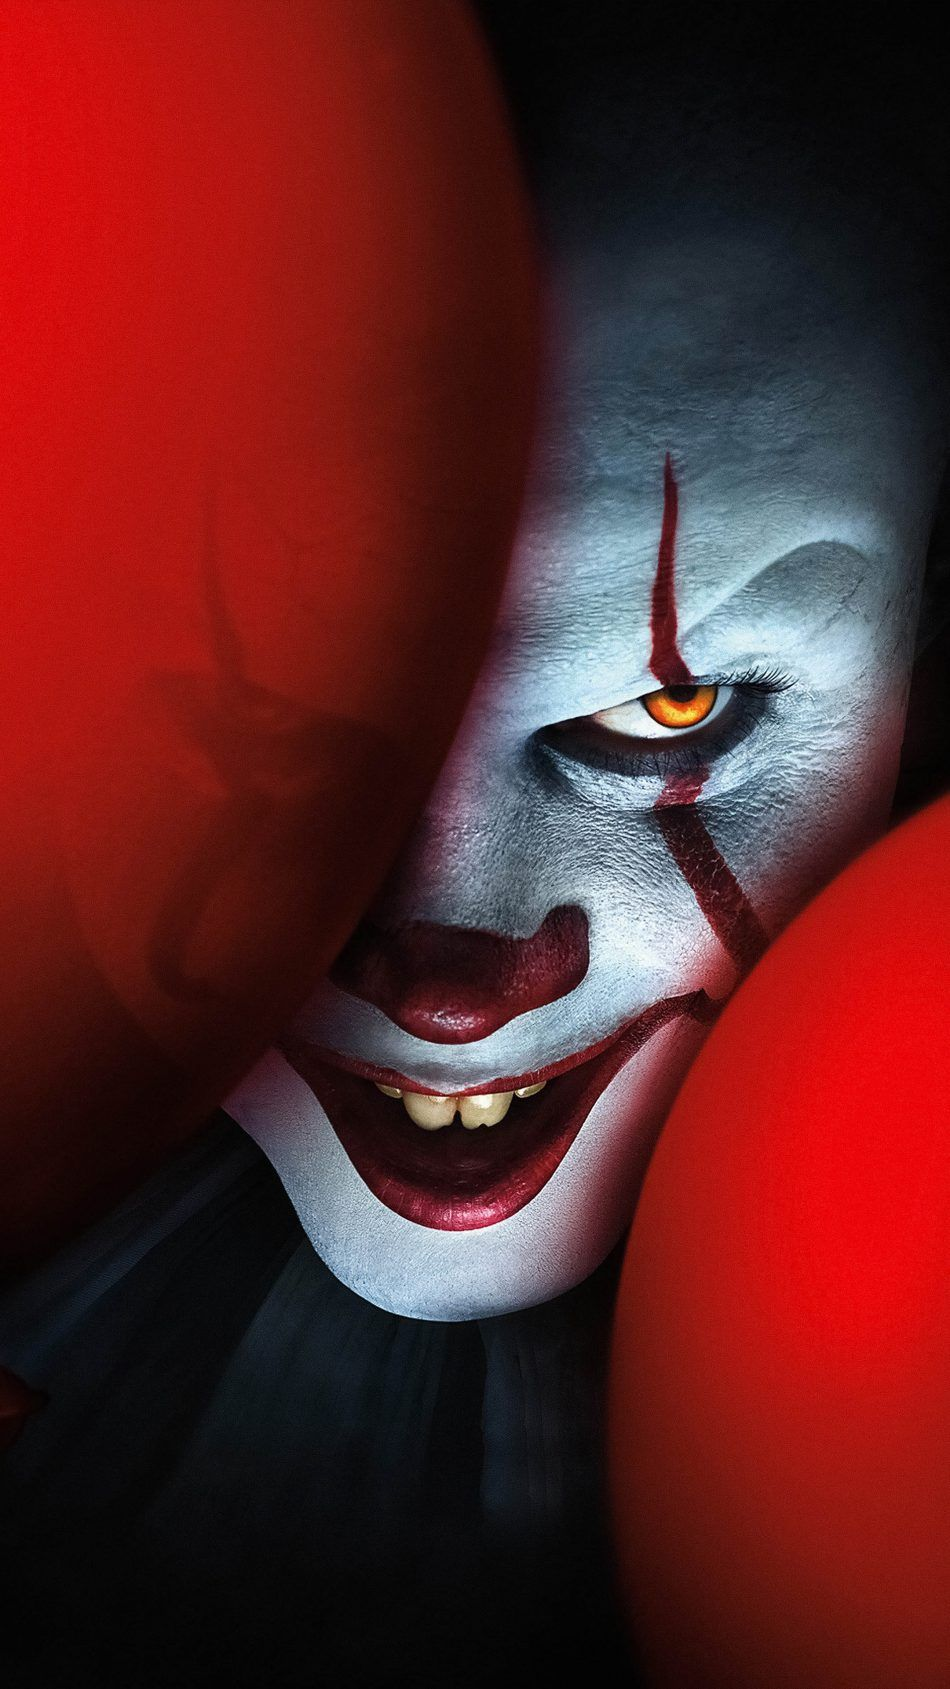 The Clown Pennywise It Chapter Two 2019 Joker Hd Wallpaper Pennywise The Clown Scary Wallpaper